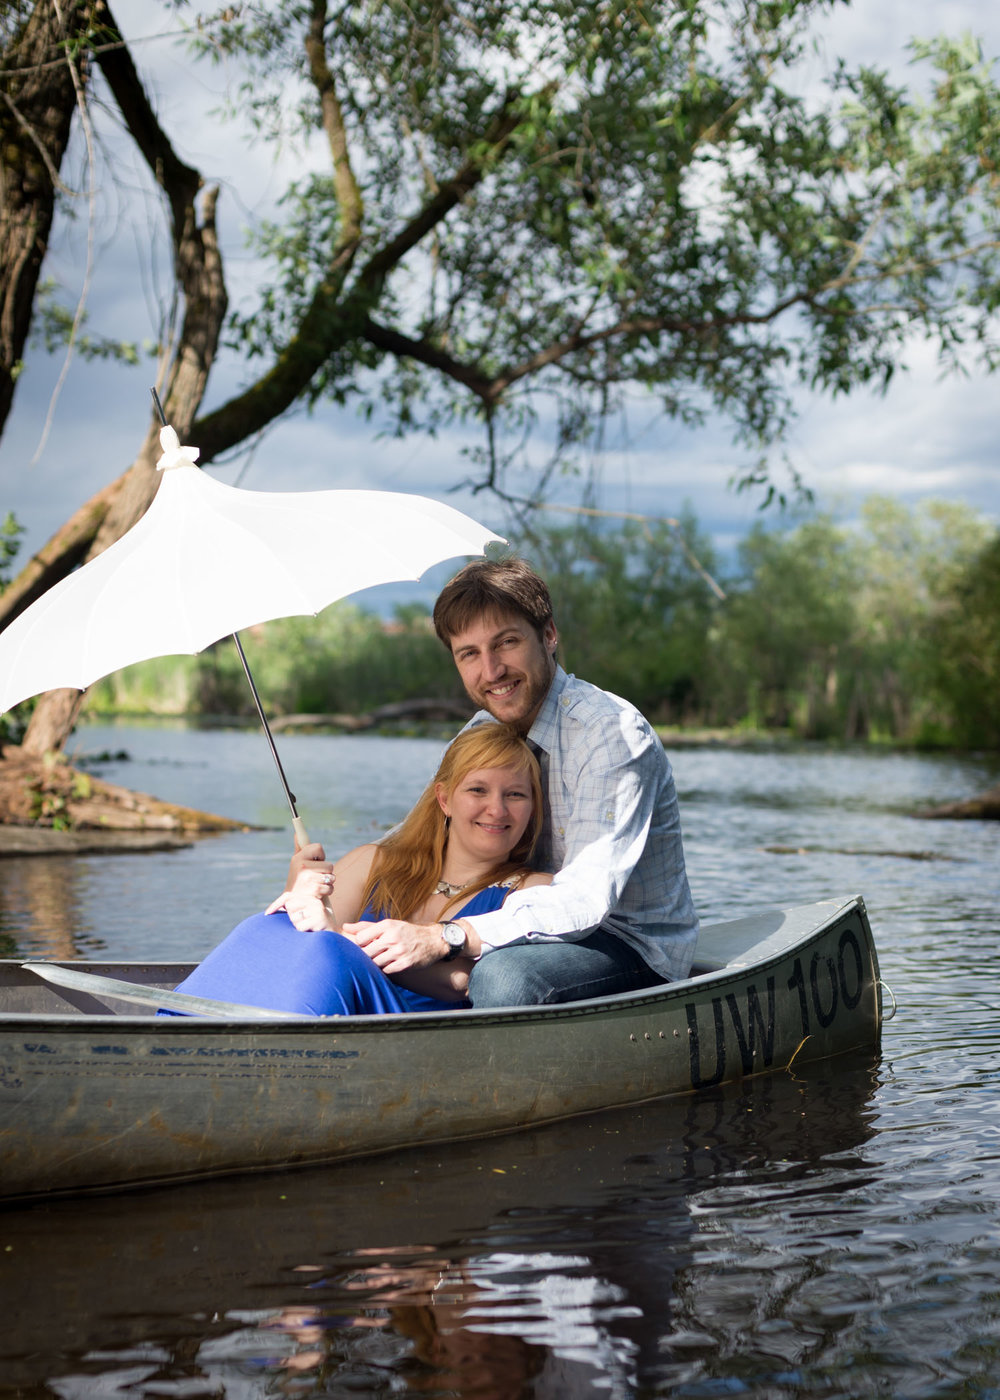 Romantic canoeing in Lake Washington